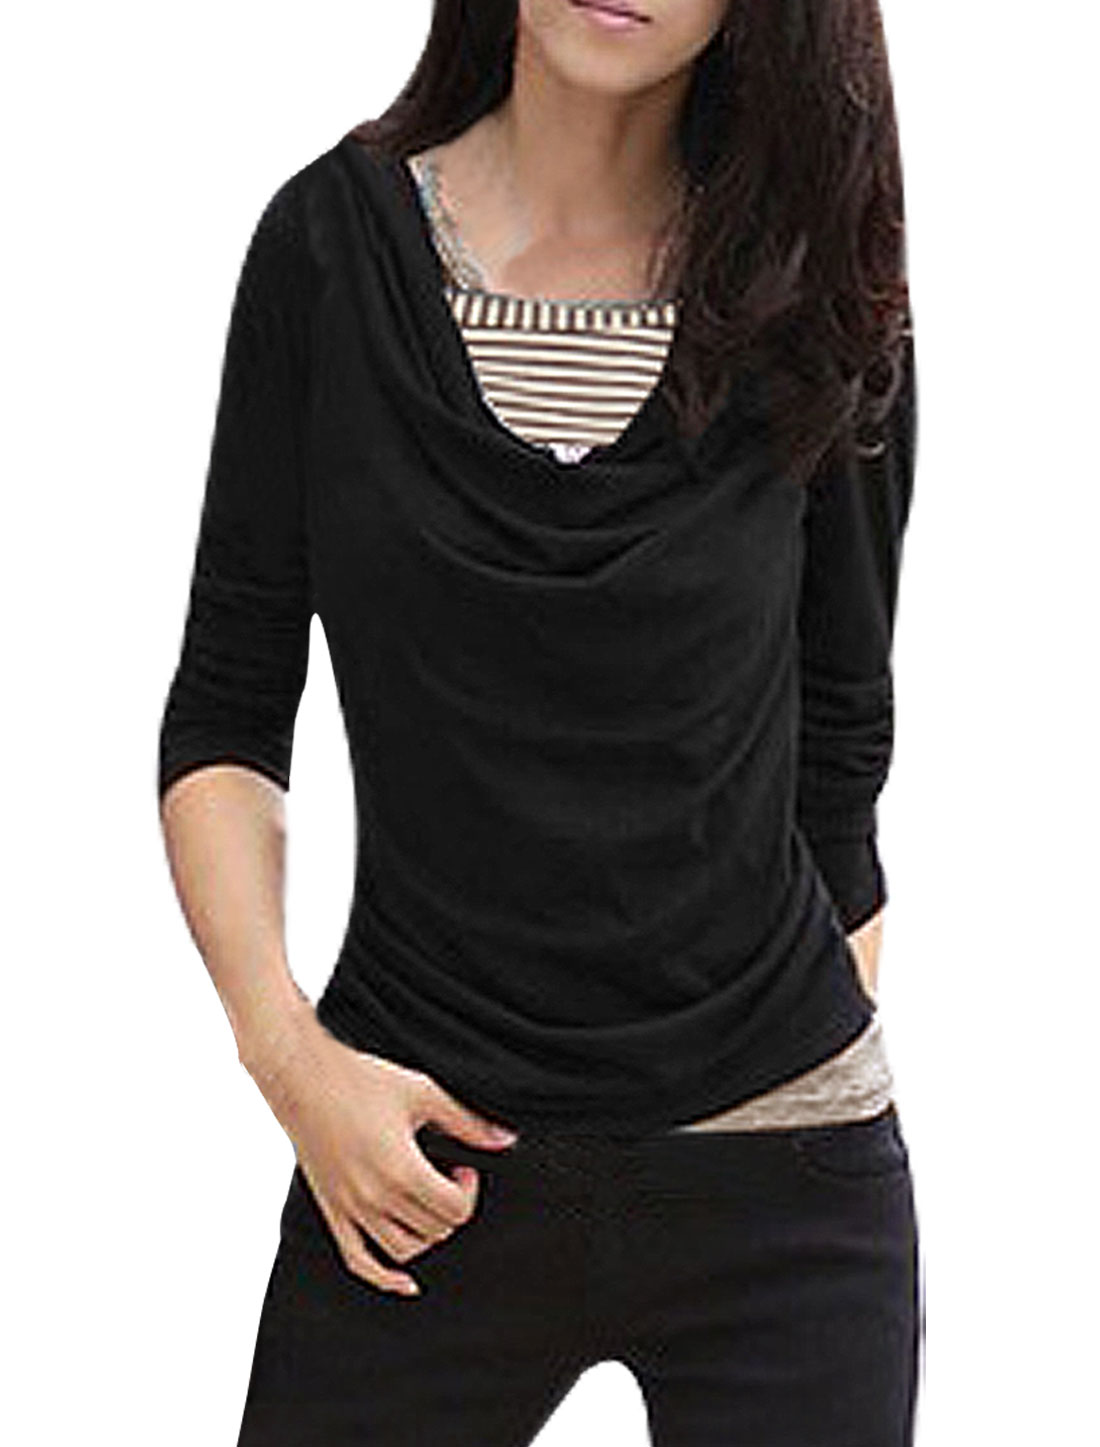 Black Cowl Neck Long Sleeve 2-Fer Style Pull Over Shirt for Woman S